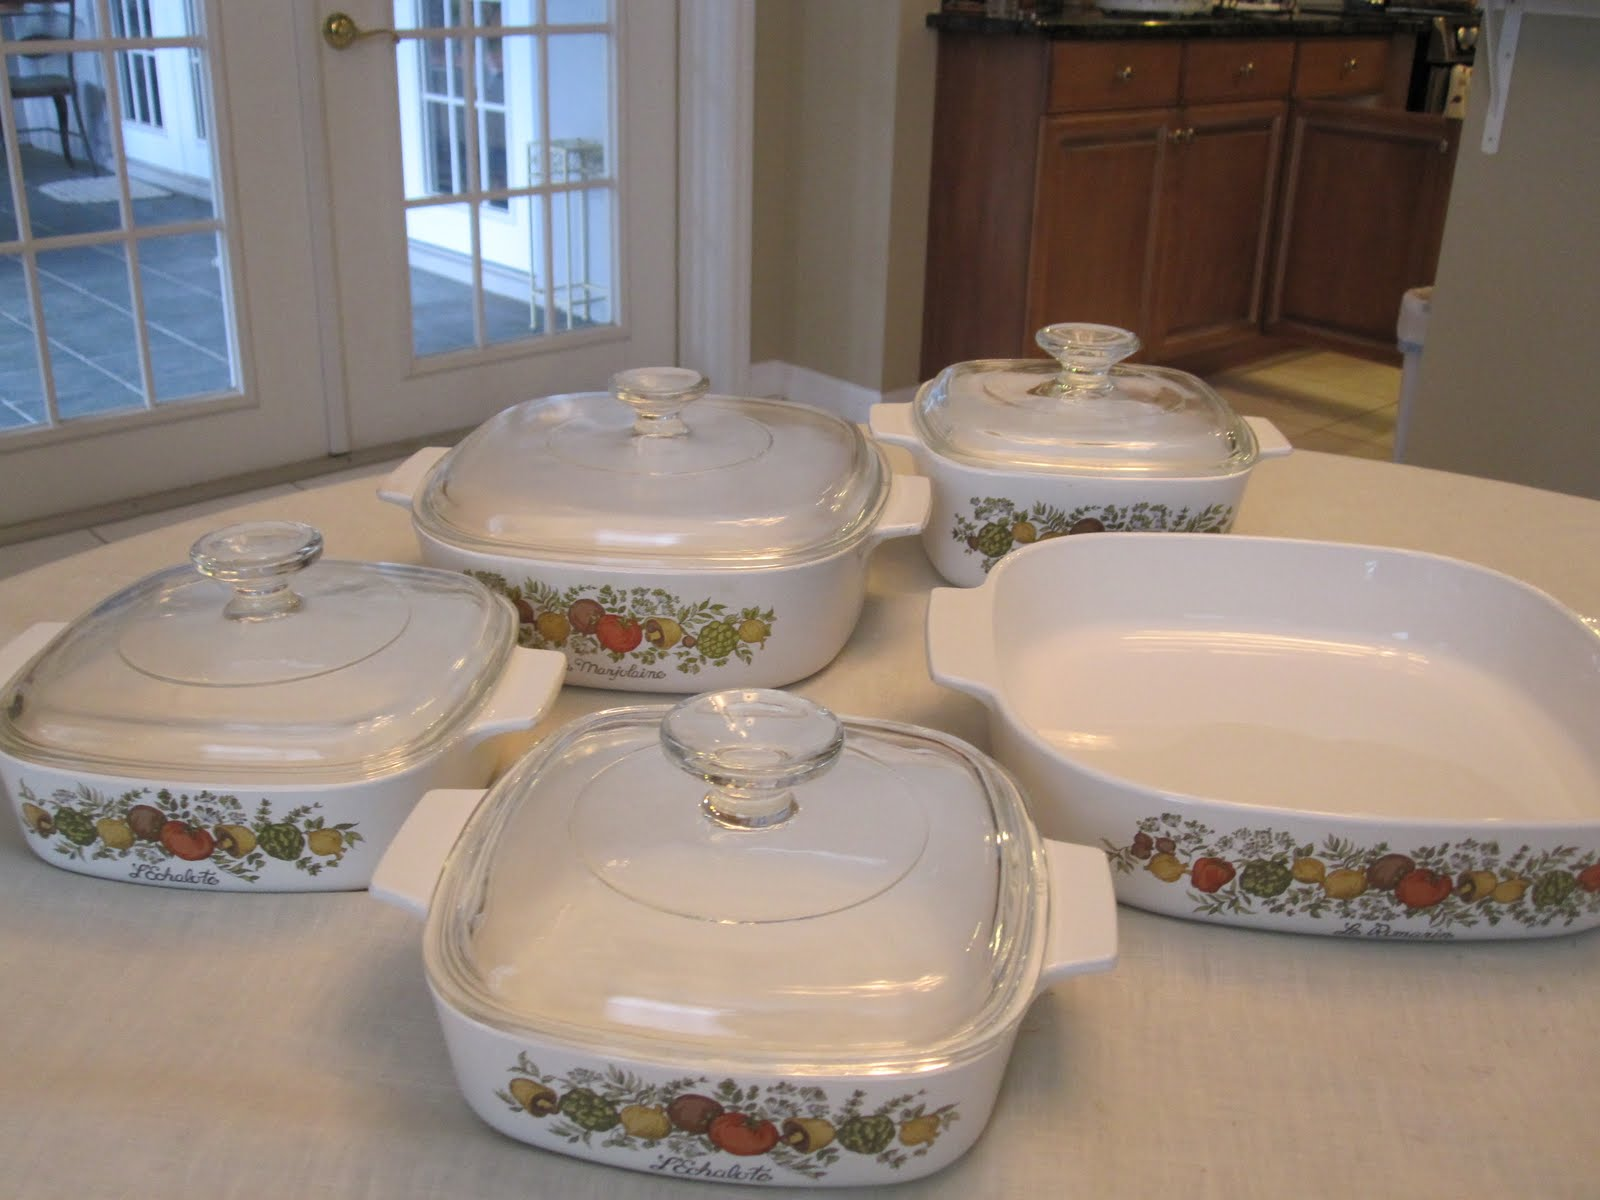 image regarding Corningware Corelle Revere Factory Store Printable Coupons known as Pyrex outlet outlets : Www.hand m